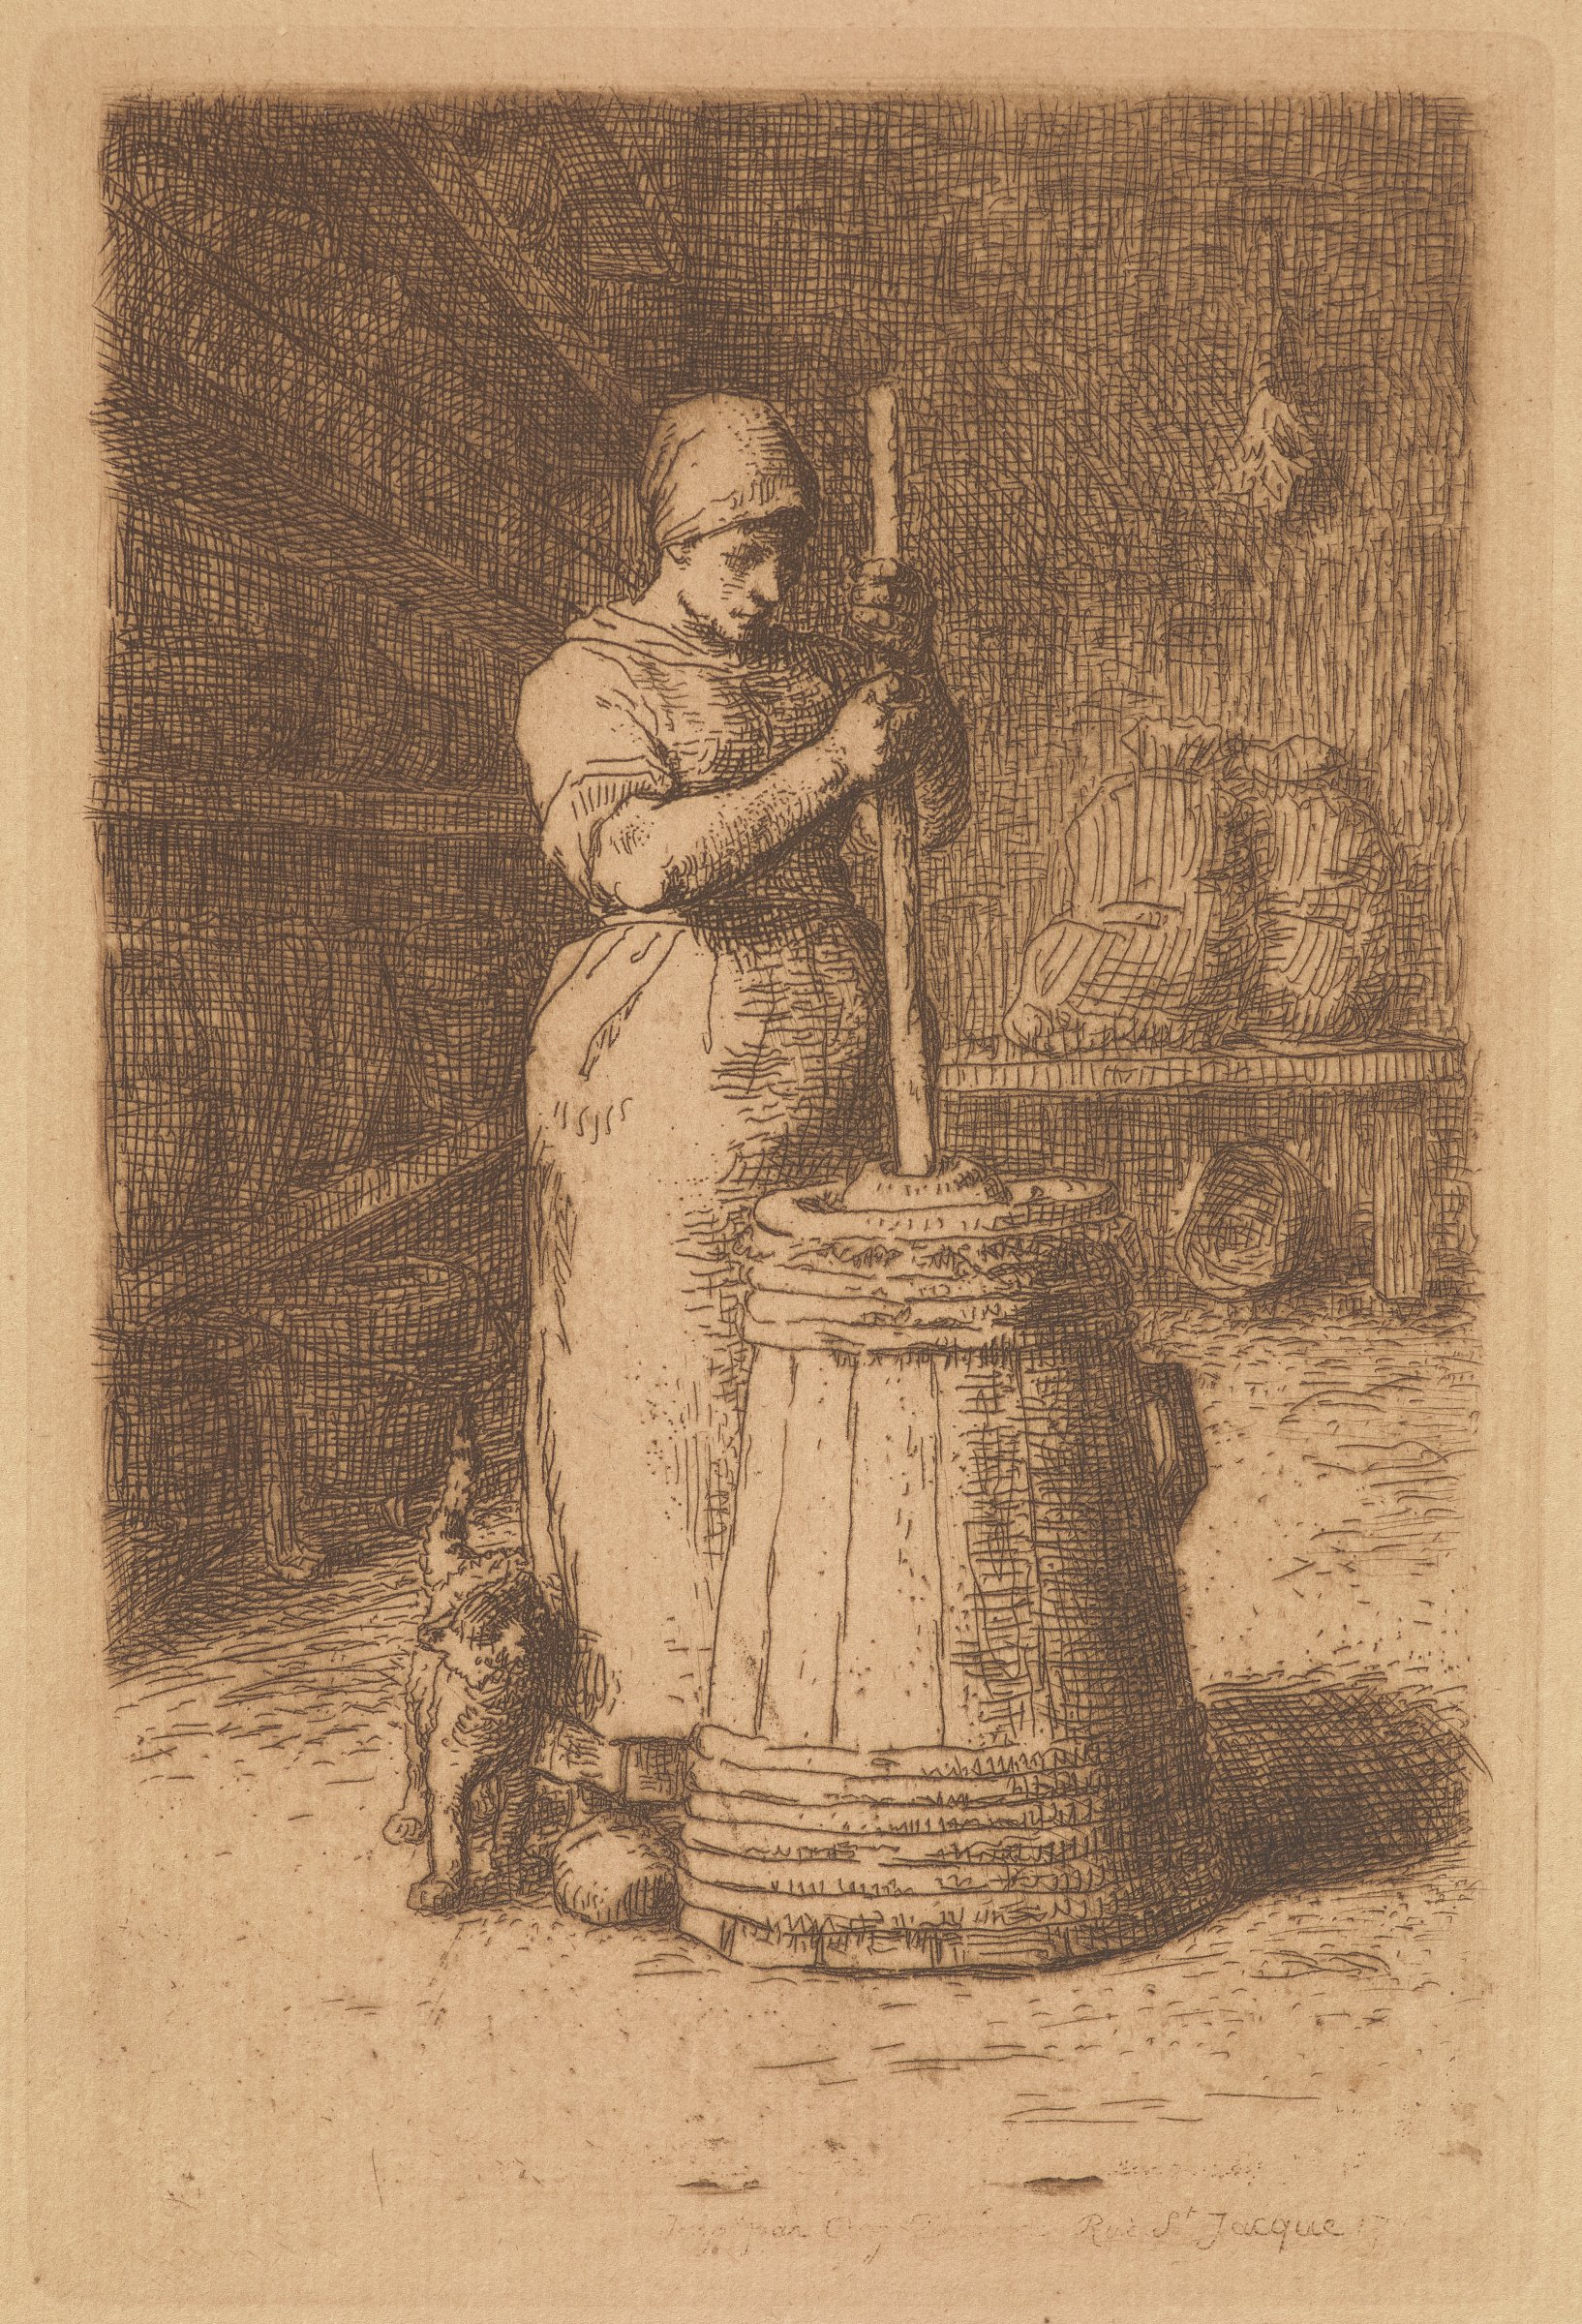 A woman churns butter as a cat brushes against her right leg. Behind her on the left are shelves of barrels. Behind her on the right are two full sacks propped on top of a bench.